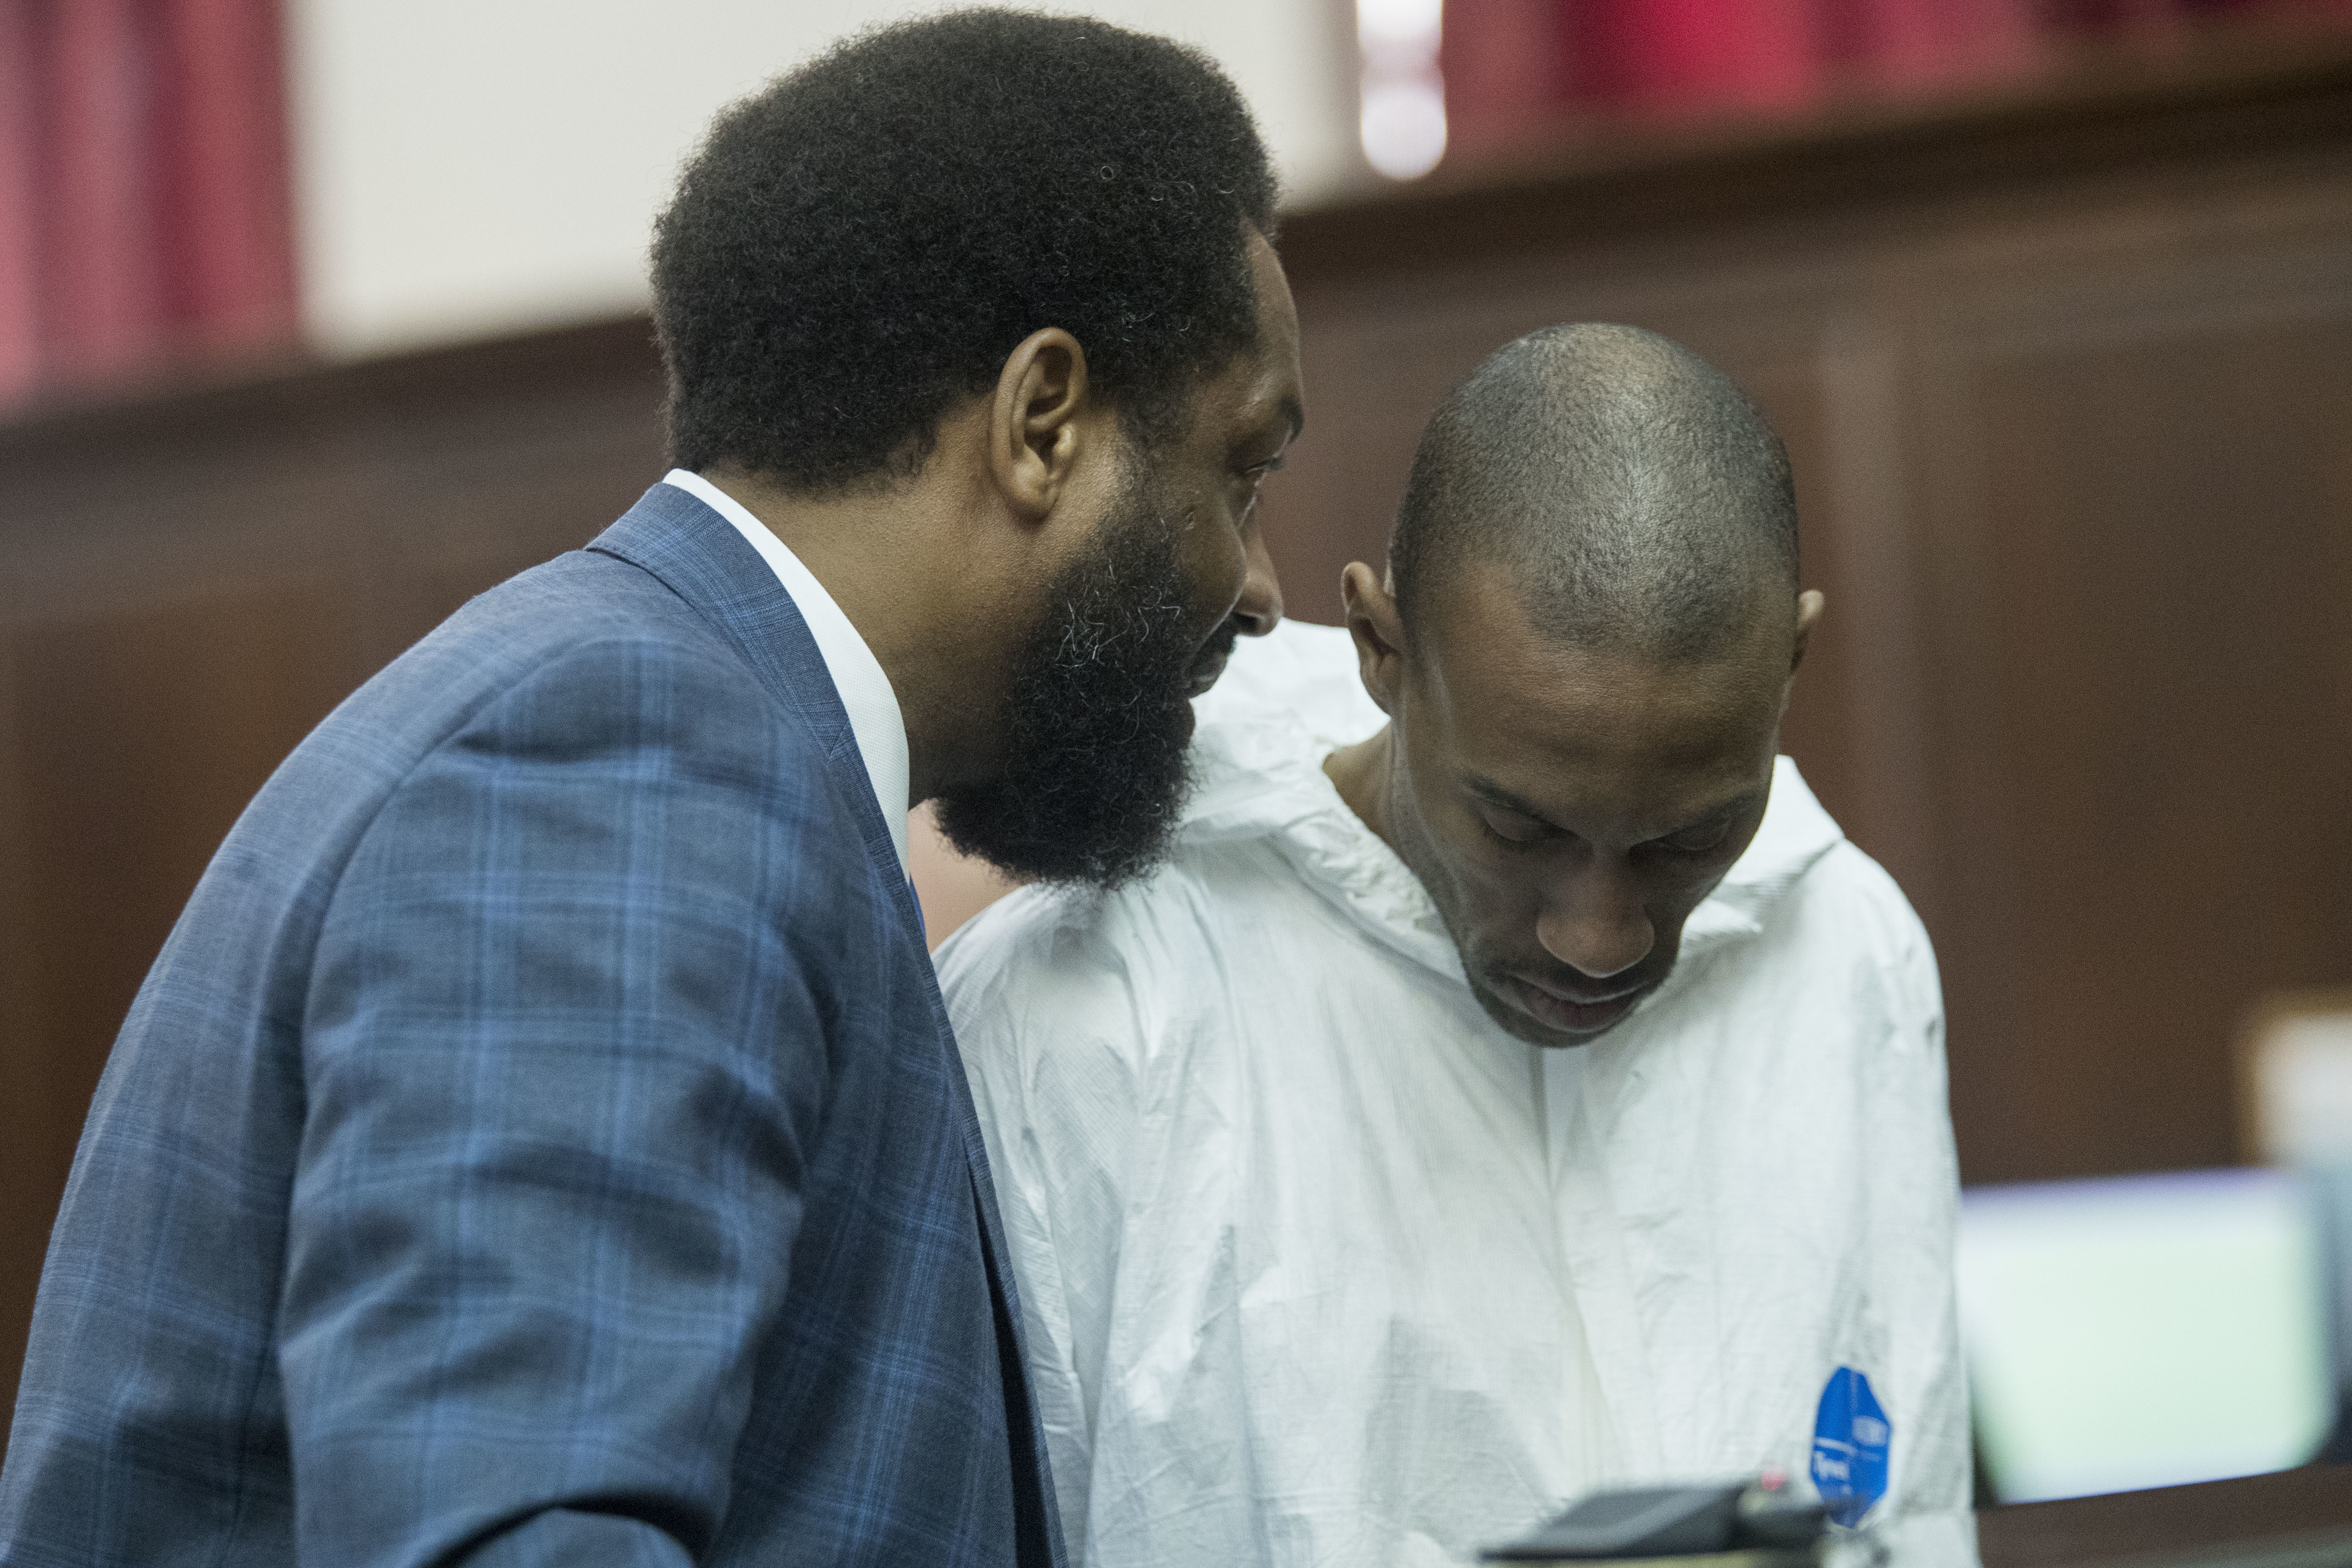 "<div class=""meta image-caption""><div class=""origin-logo origin-image ap""><span>AP</span></div><span class=""caption-text"">Attorney Norman Williams, left, speaks to James Currie during his arraignment in Manhattan criminal court, Friday, Aug. 10, 2018, in New York. (AP Photo/Mary Altaffer)</span></div>"